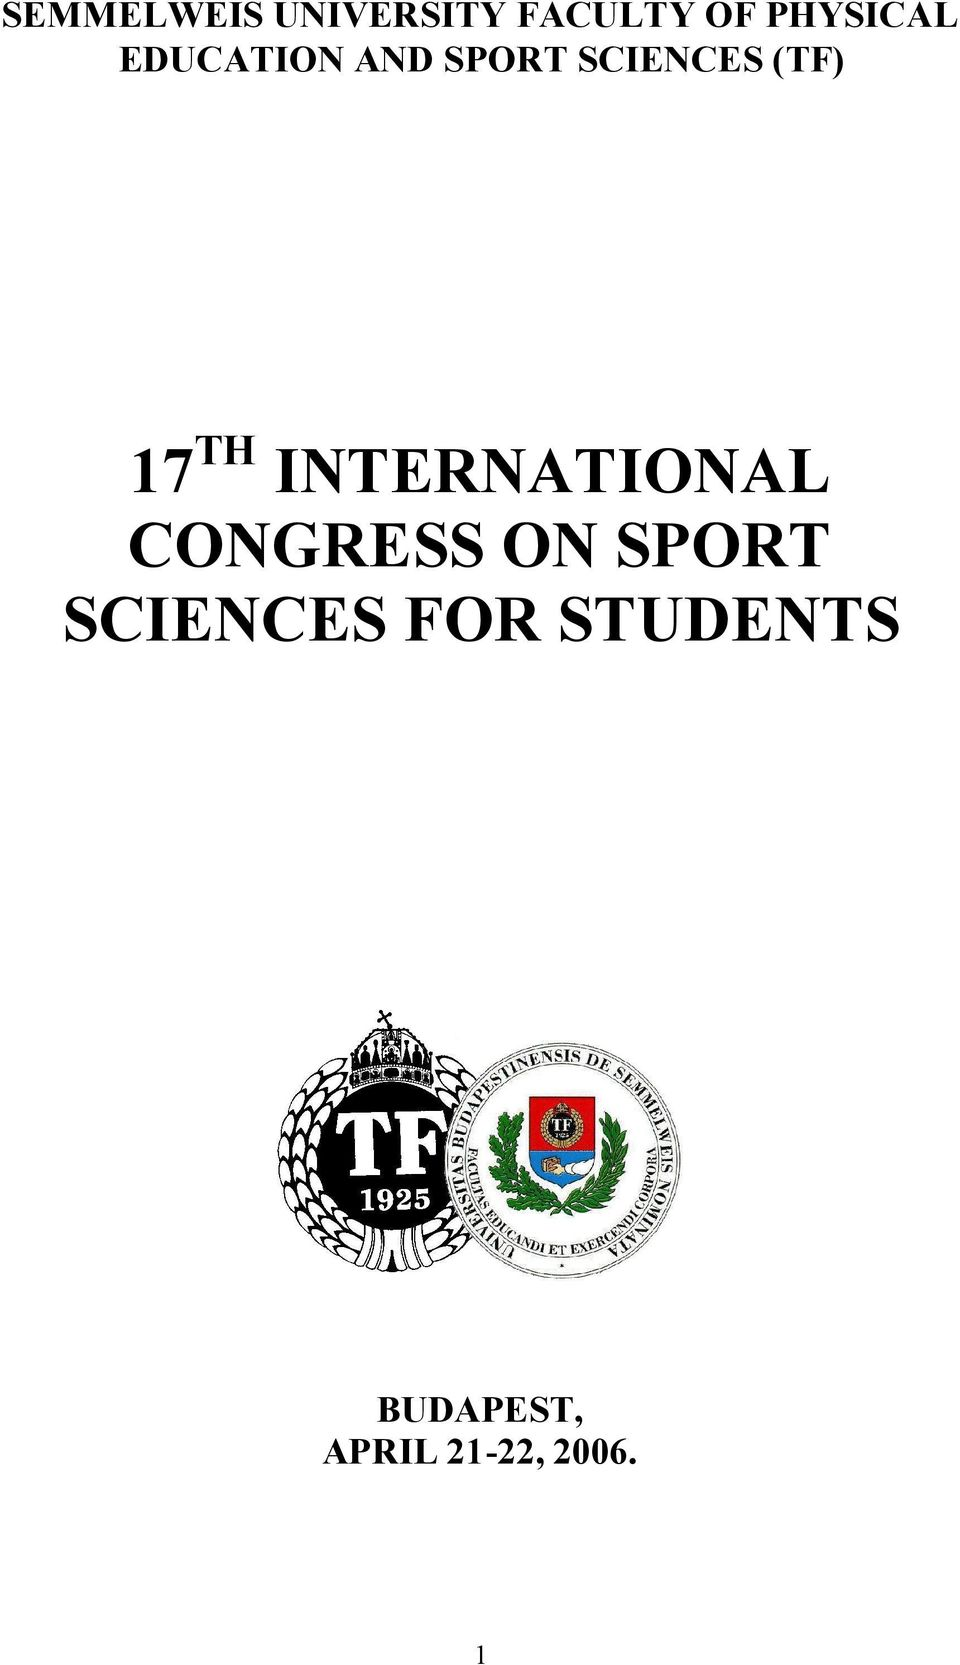 INTERNATIONAL CONGRESS ON SPORT SCIENCES